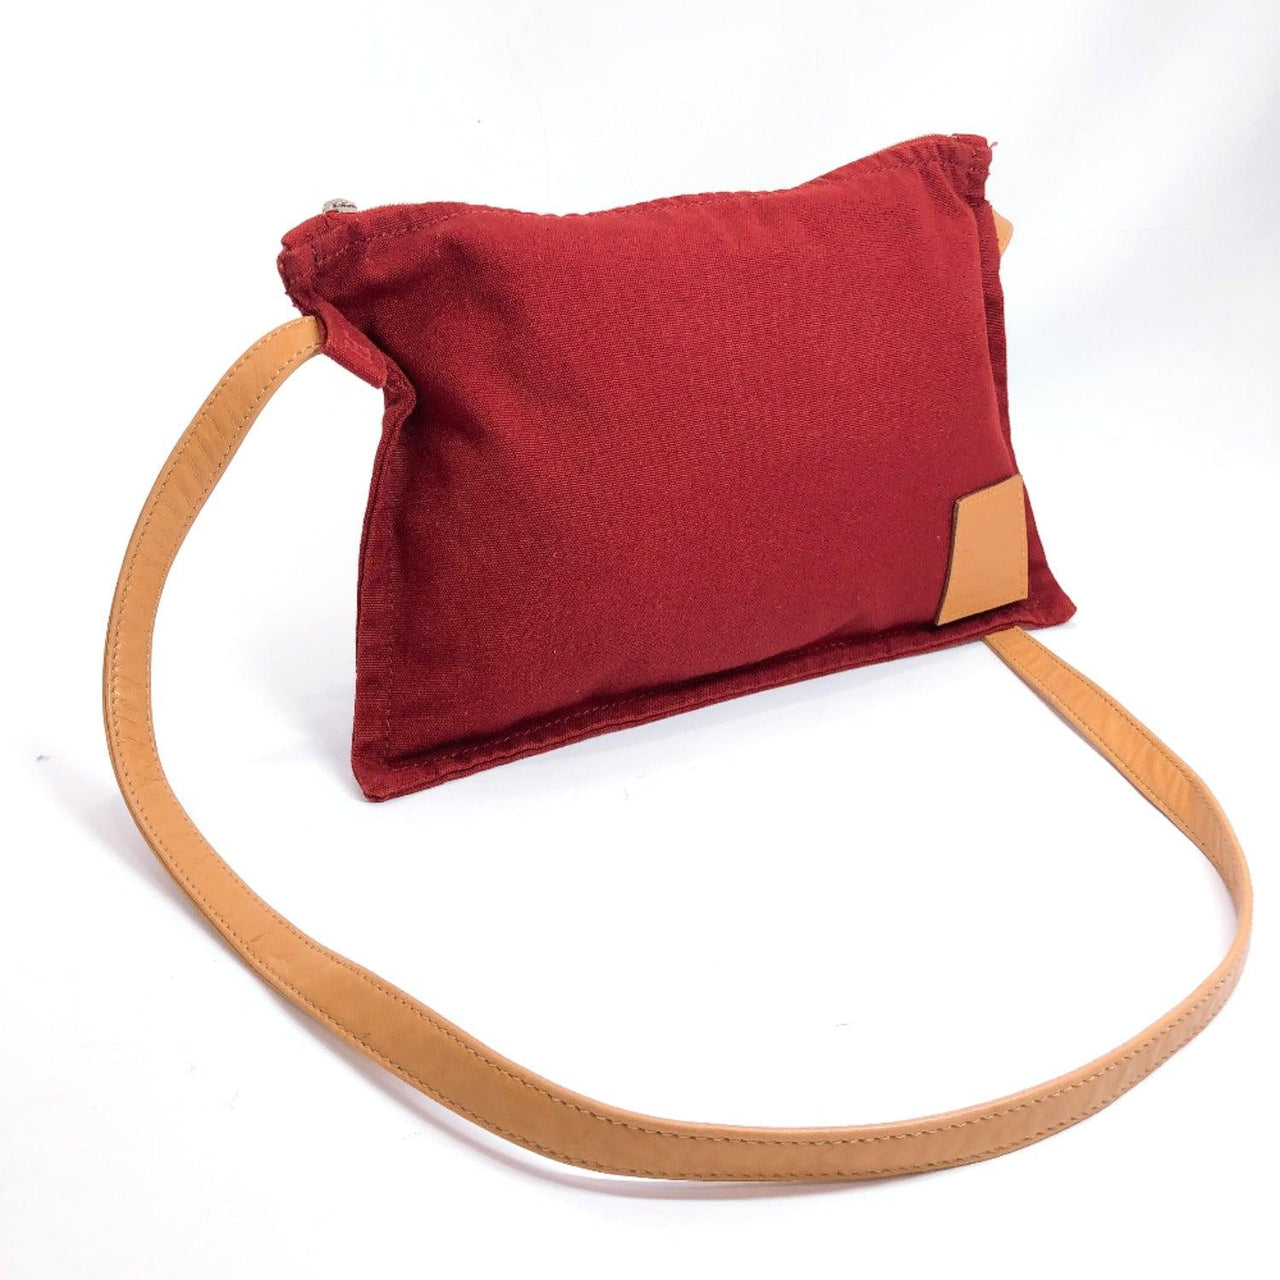 HERMES Shoulder Bag Cotton canvas/leather Red Women Used